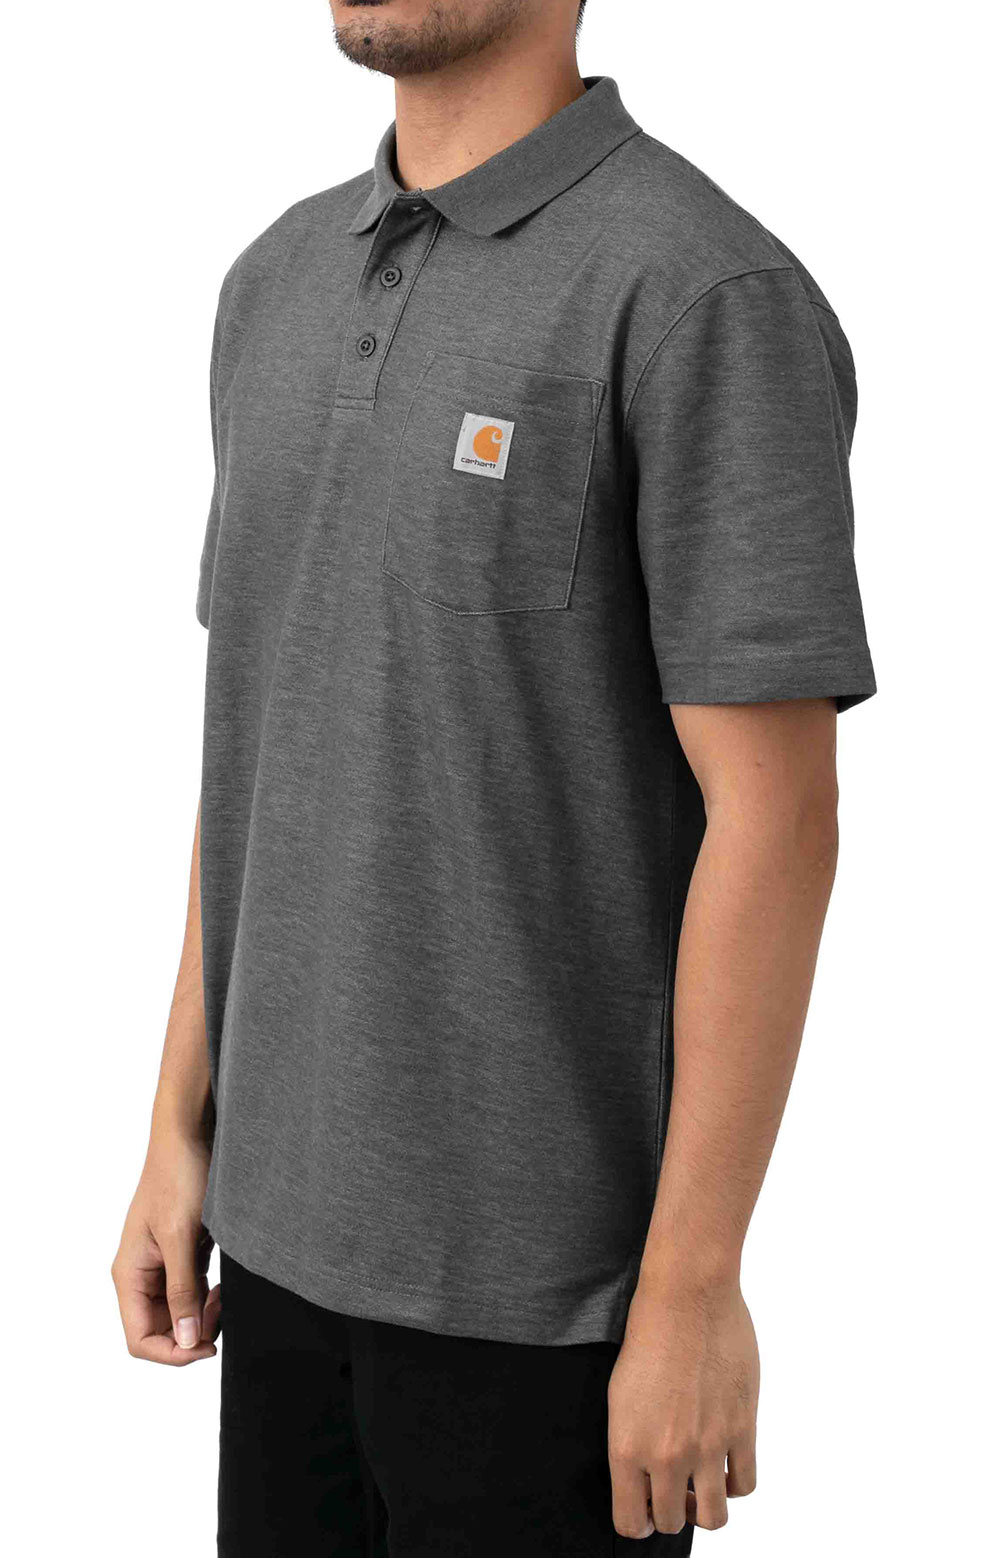 (K570) Contractor's Work Pocket Polo - Carbon Heather  2